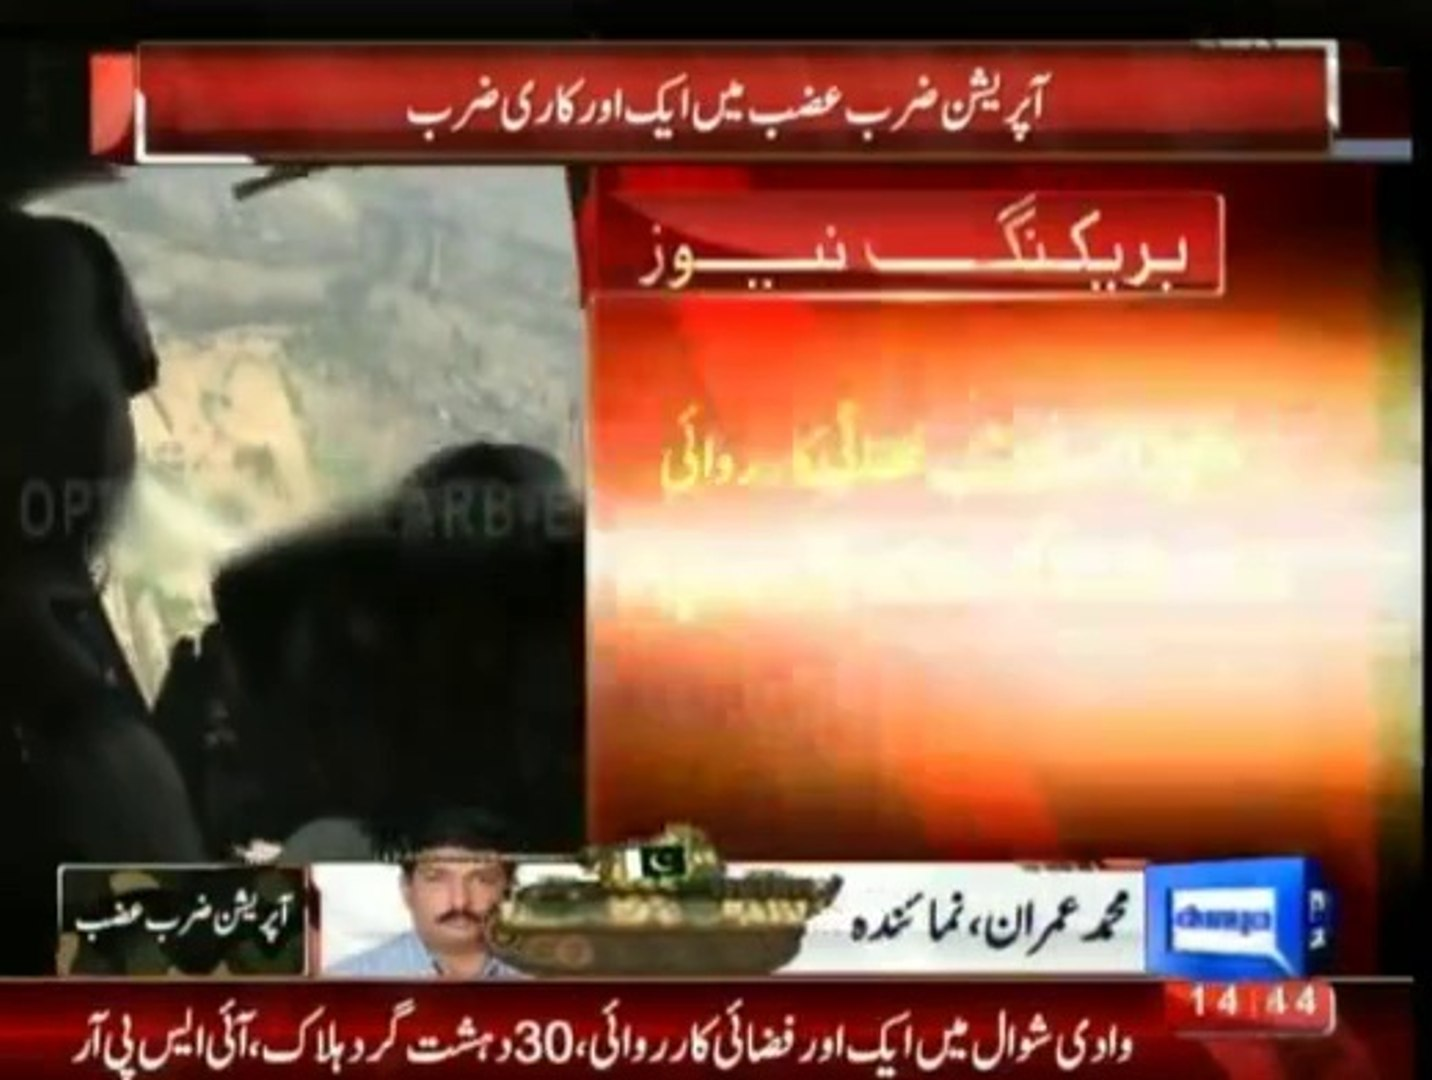 30 terrorists killed in air strikes in Shawal, North Waziristan, 2 hideouts destroyed, says ISPR